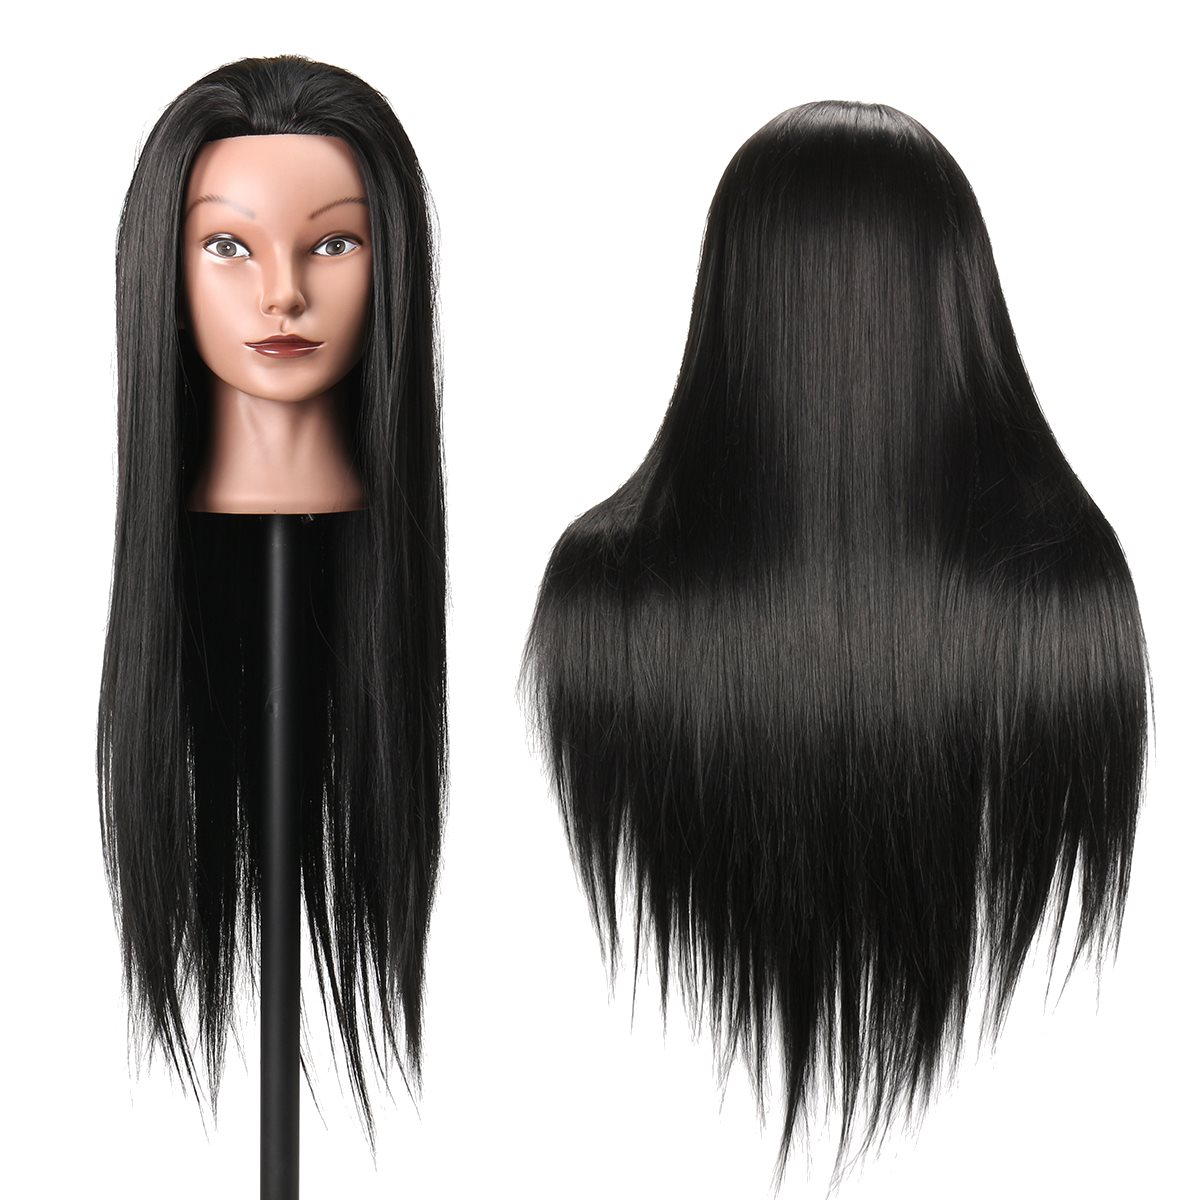 Hearty Synthetic Mannequin Head Female Hair Head Doll 22 Inches Mannequin Doll Head Hairdressing Training Heads Styling With Fiber Hair Extensions & Wigs